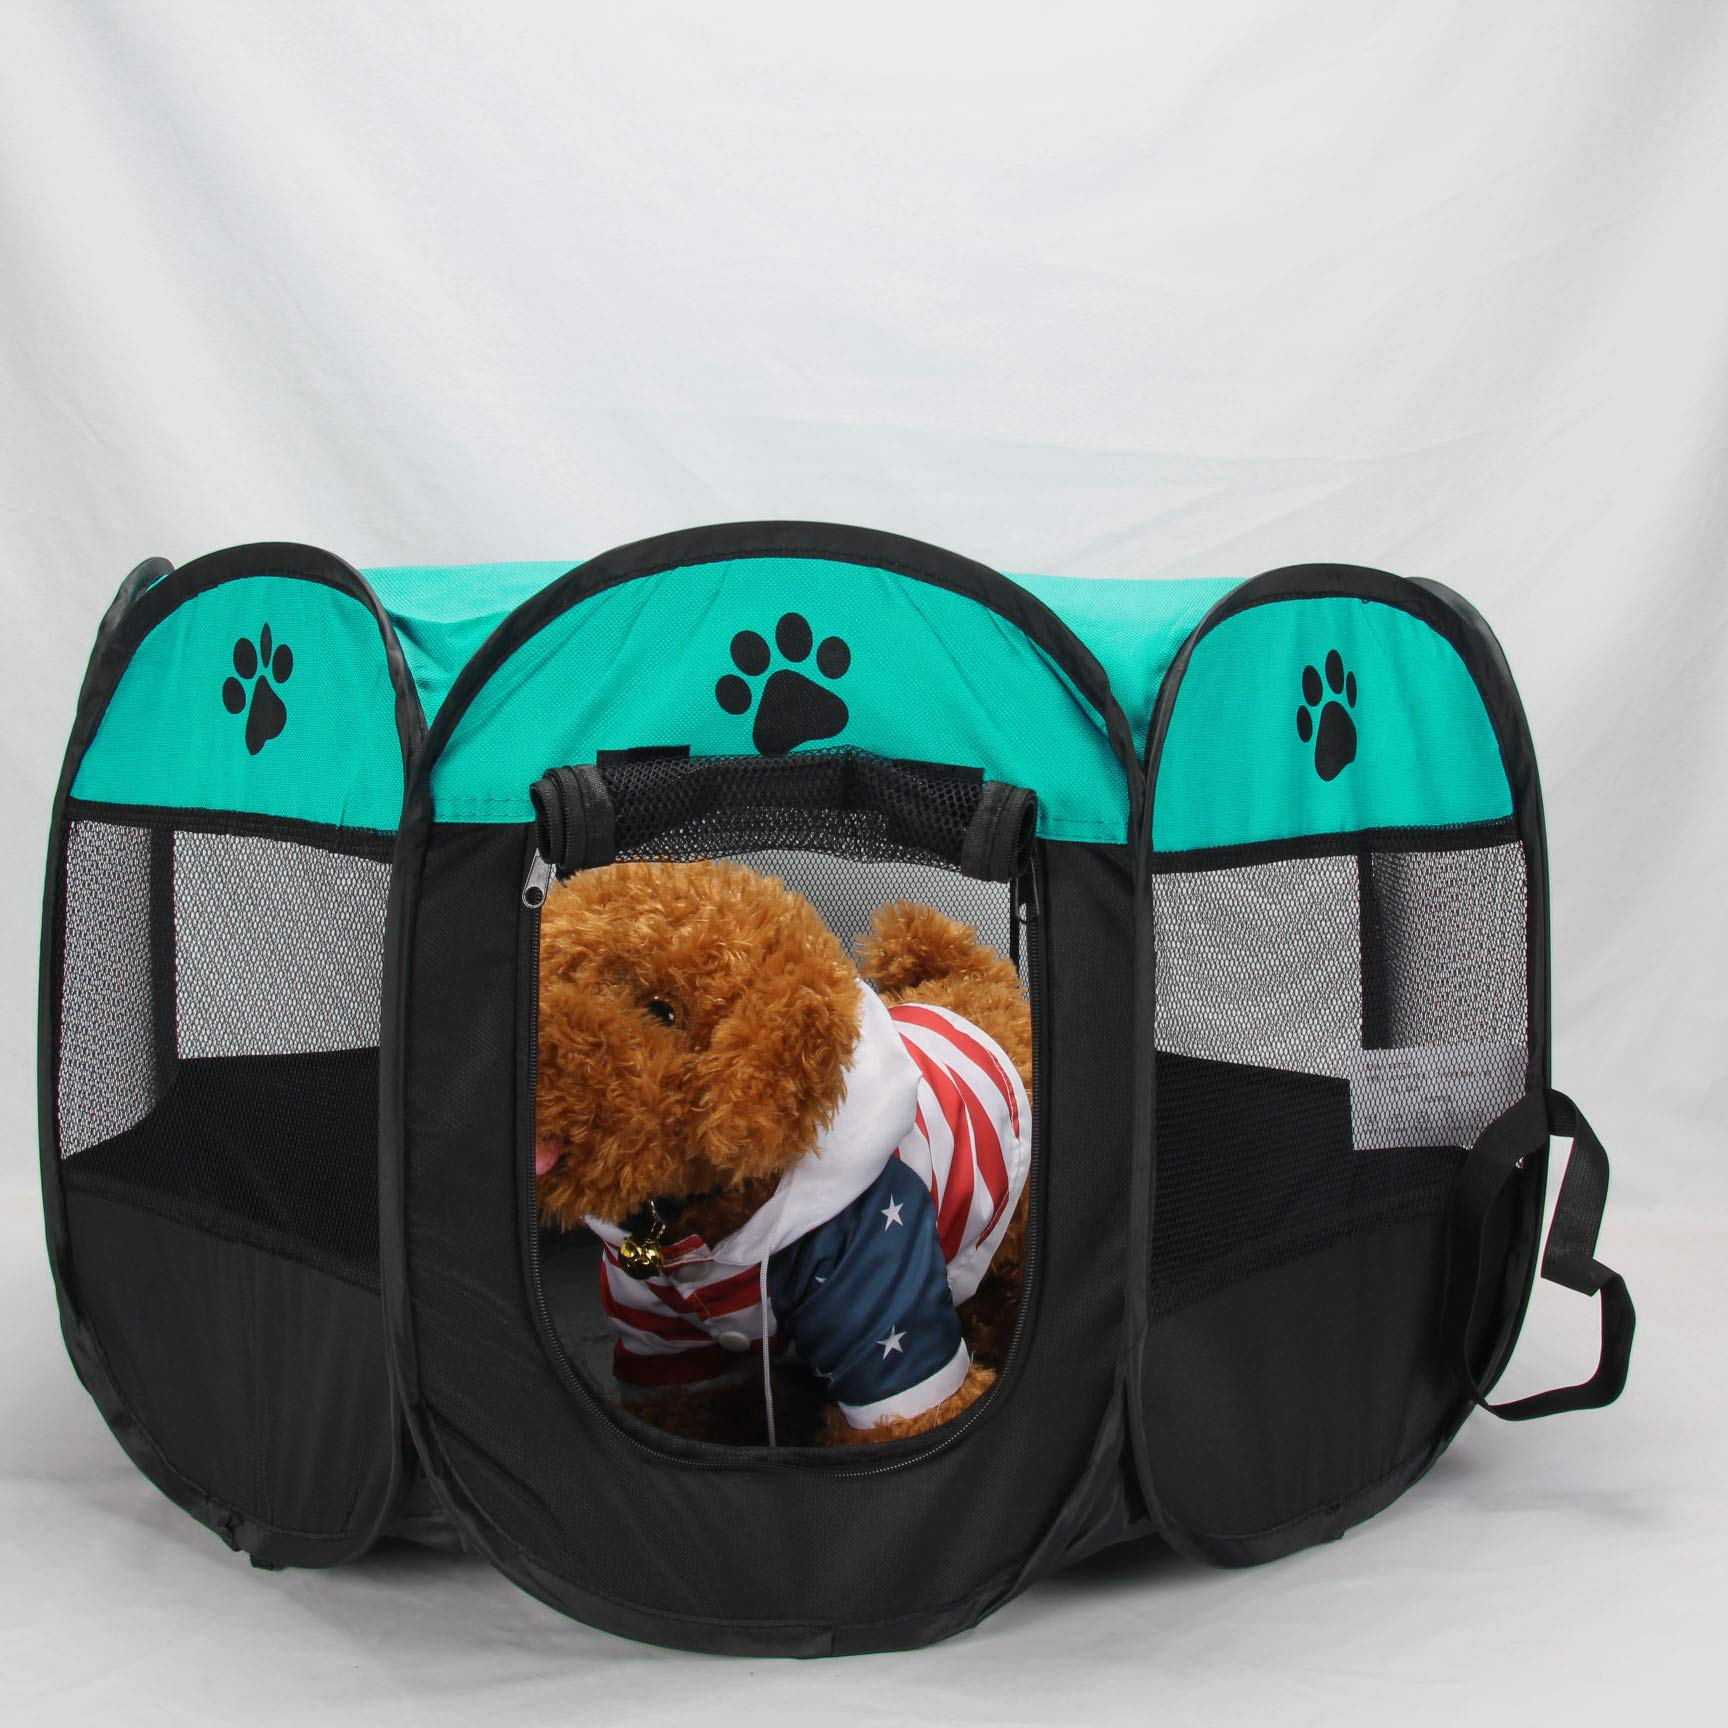 MiLuck Portable Outdoor Dog Playpen,Exercise 8-Panel Kennel Mesh Shade Cover Indoor/Outdoor Tent Fence for Pet Dogs Cats (L, Blue) by MiLuck (Image #2)